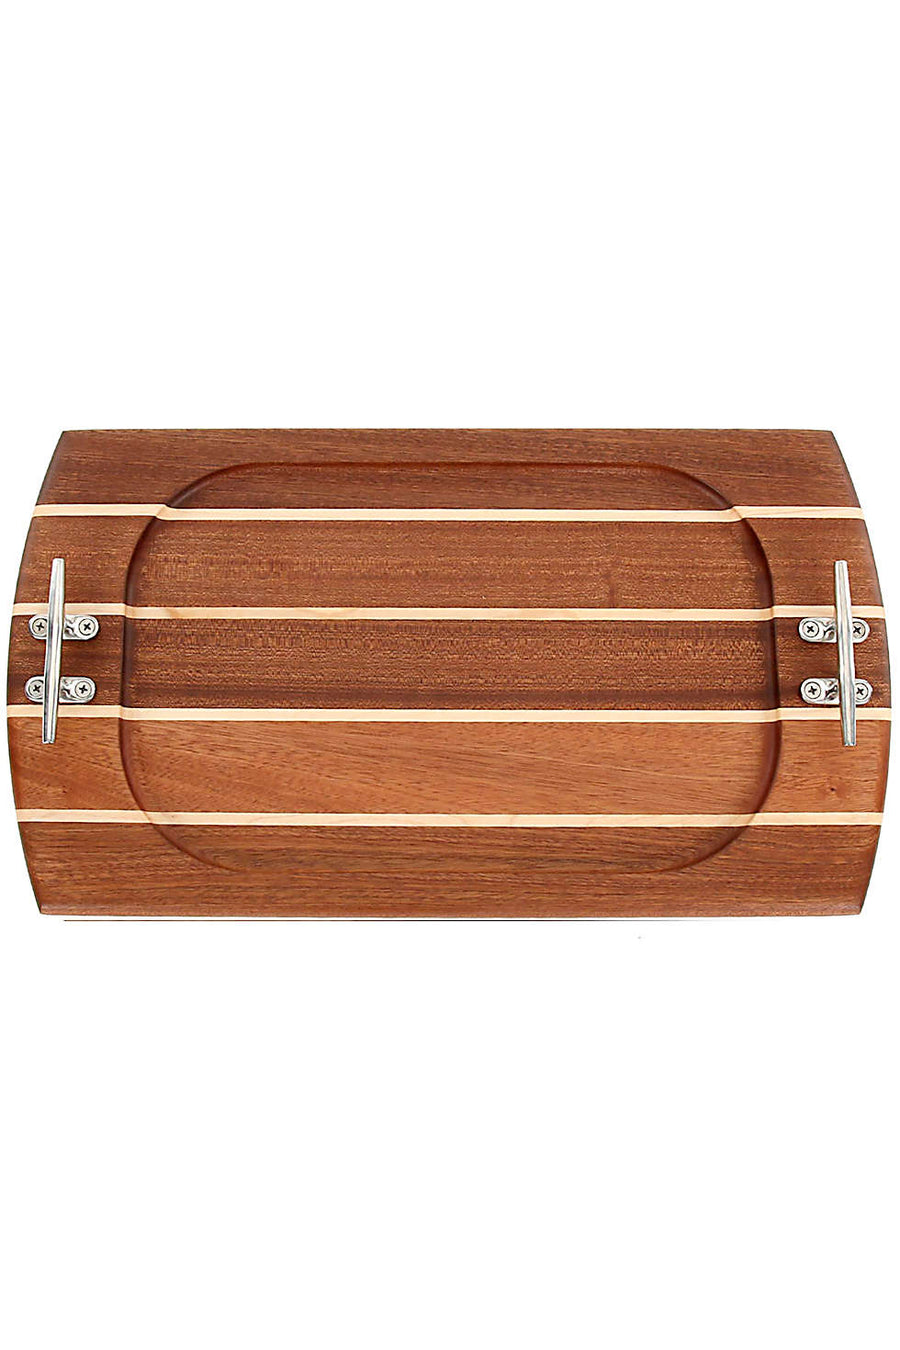 Nautical Rectangle Sapele serving board with accents of Maple. Made in USA. Stainless steel cleat handles.